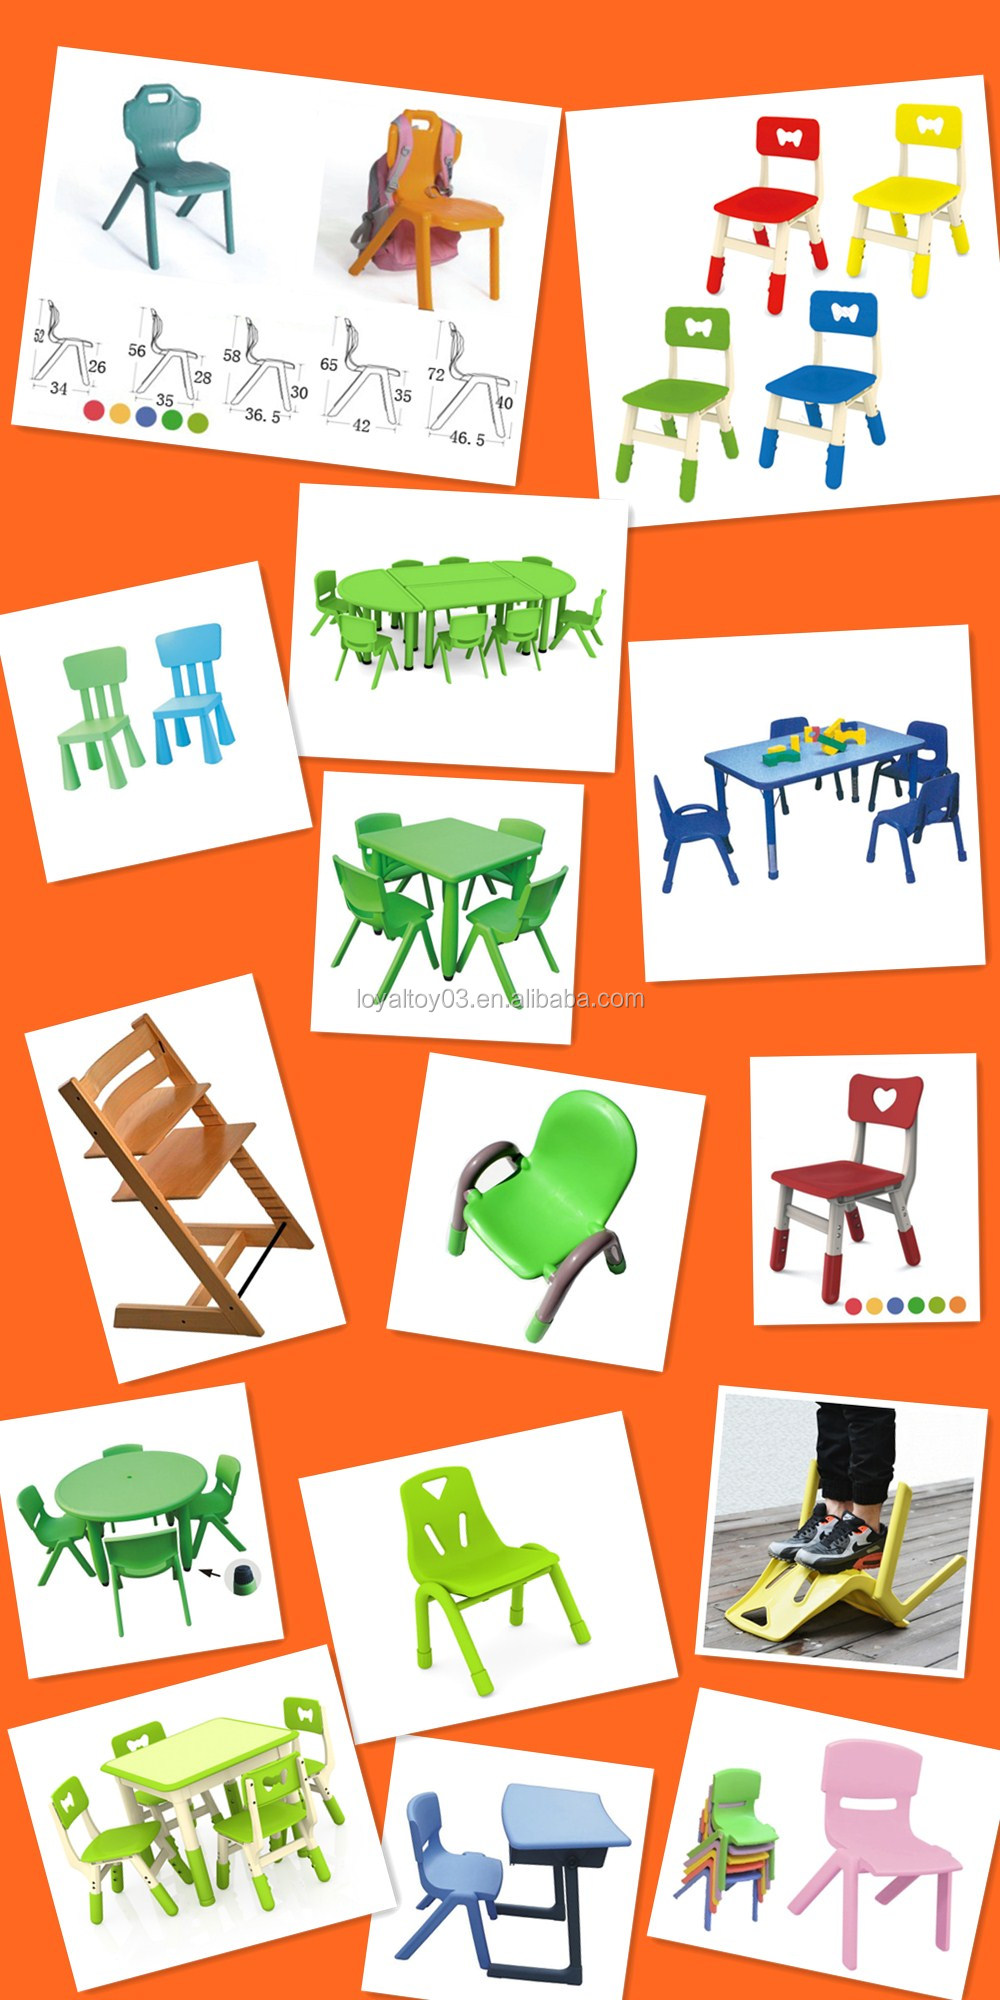 2016 NEW KID CHAIR ,PRESCHOOL CHAIR,DAYCARE CHAIR,HOT SALE with low cost